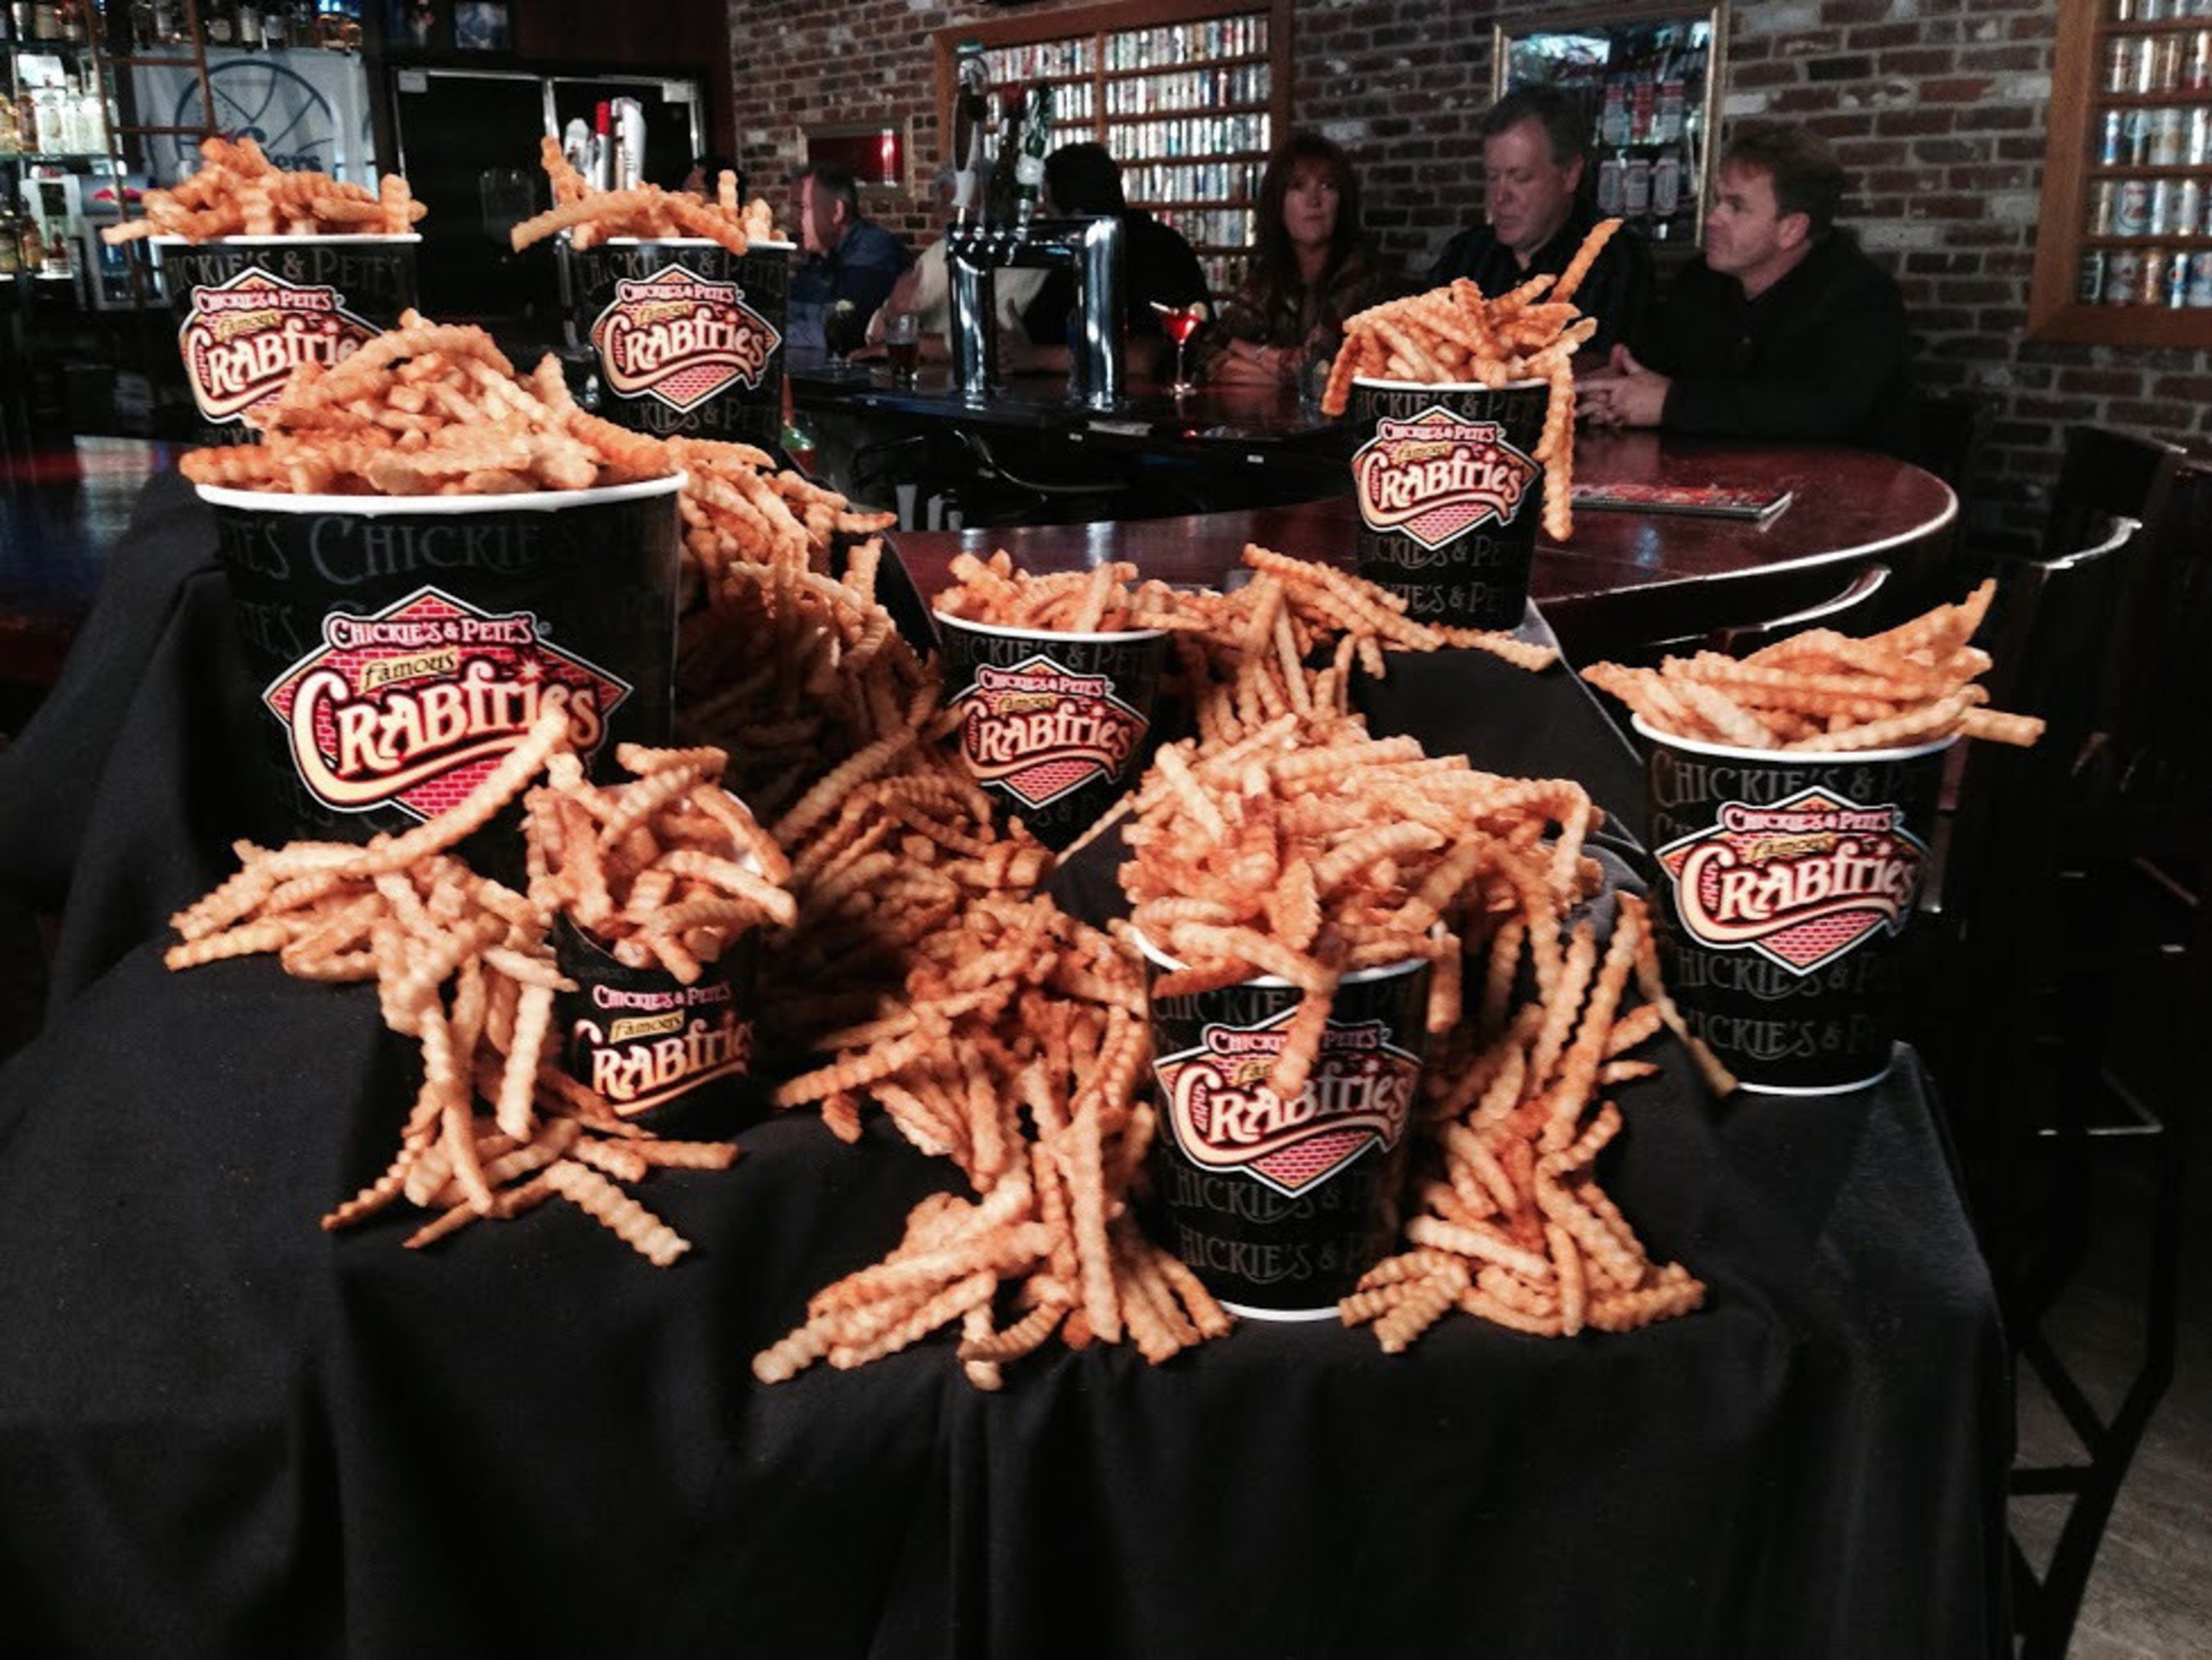 """Chickie's & Pete's celebrates """"Crabfries for Heroes"""" on National French Fry Day. Proceeds of $1 Crabfries sales aid the families of fallen Philadelphia Police Officers. The event runs at all Chickie's & Pete's full service locations across the Delaware Valley Wednesday July 13th. Visit www.ChickiesandPetes.com for details."""